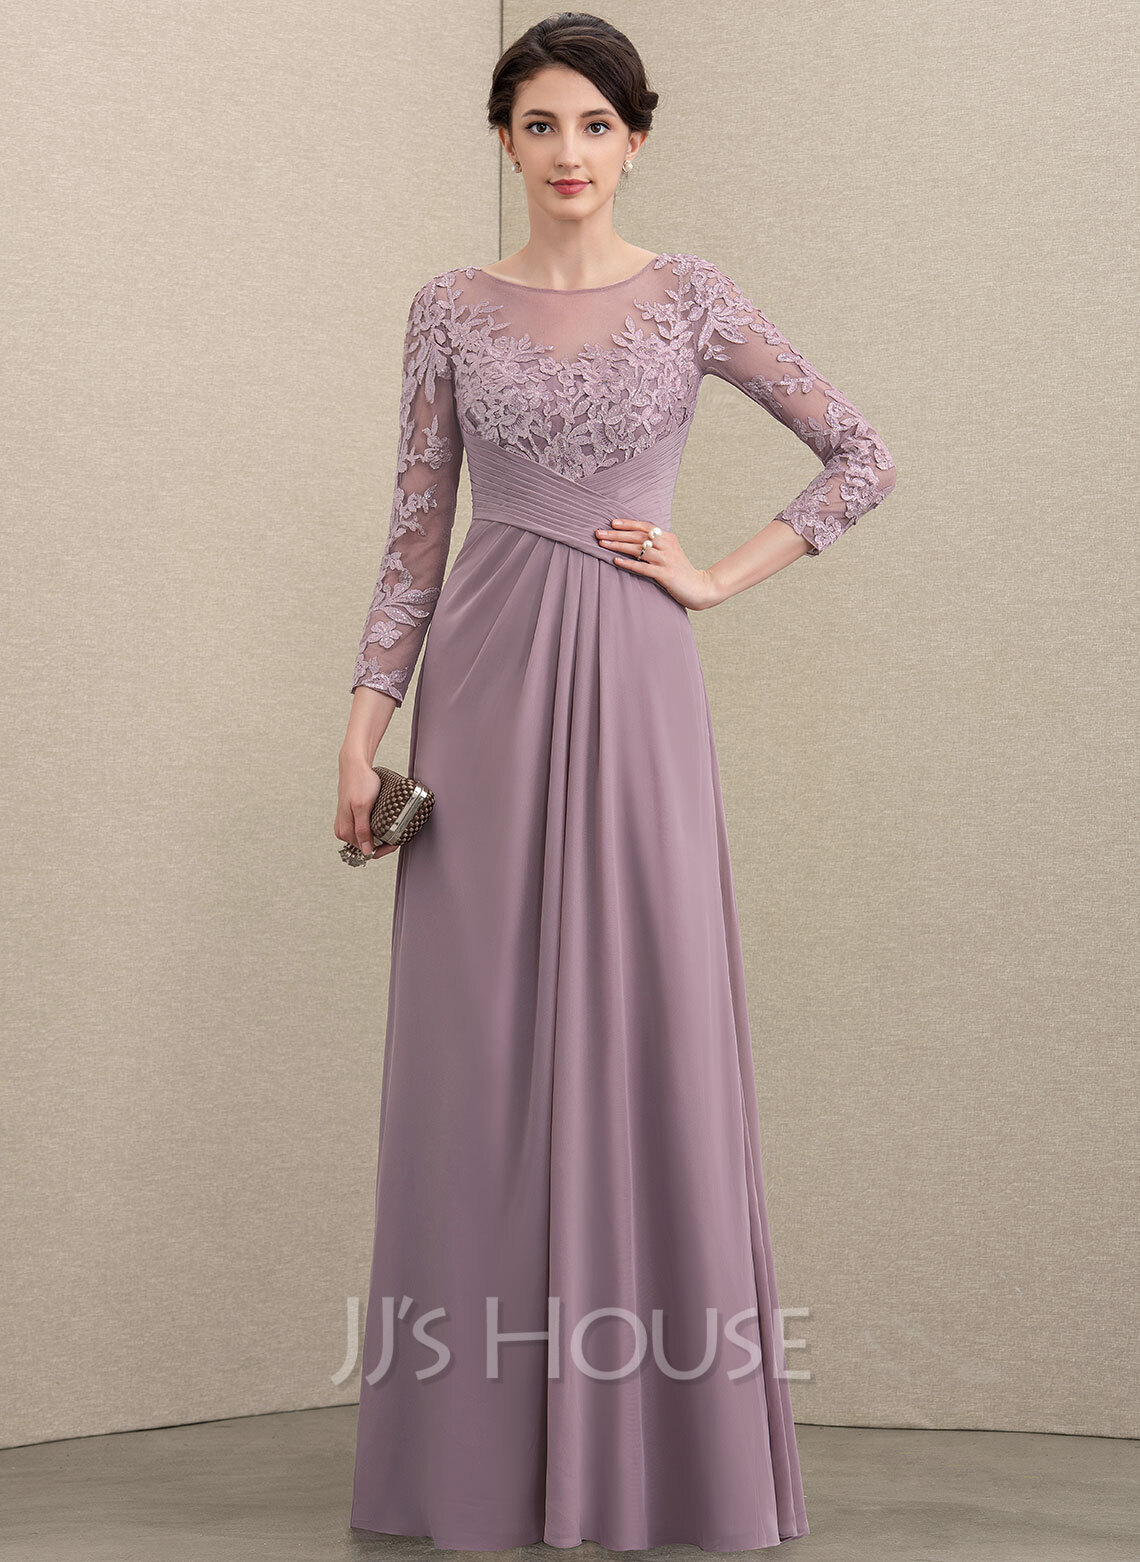 A-Line Scoop Neck Floor-Length Chiffon Lace Mother of the Bride Dress With Ruffle